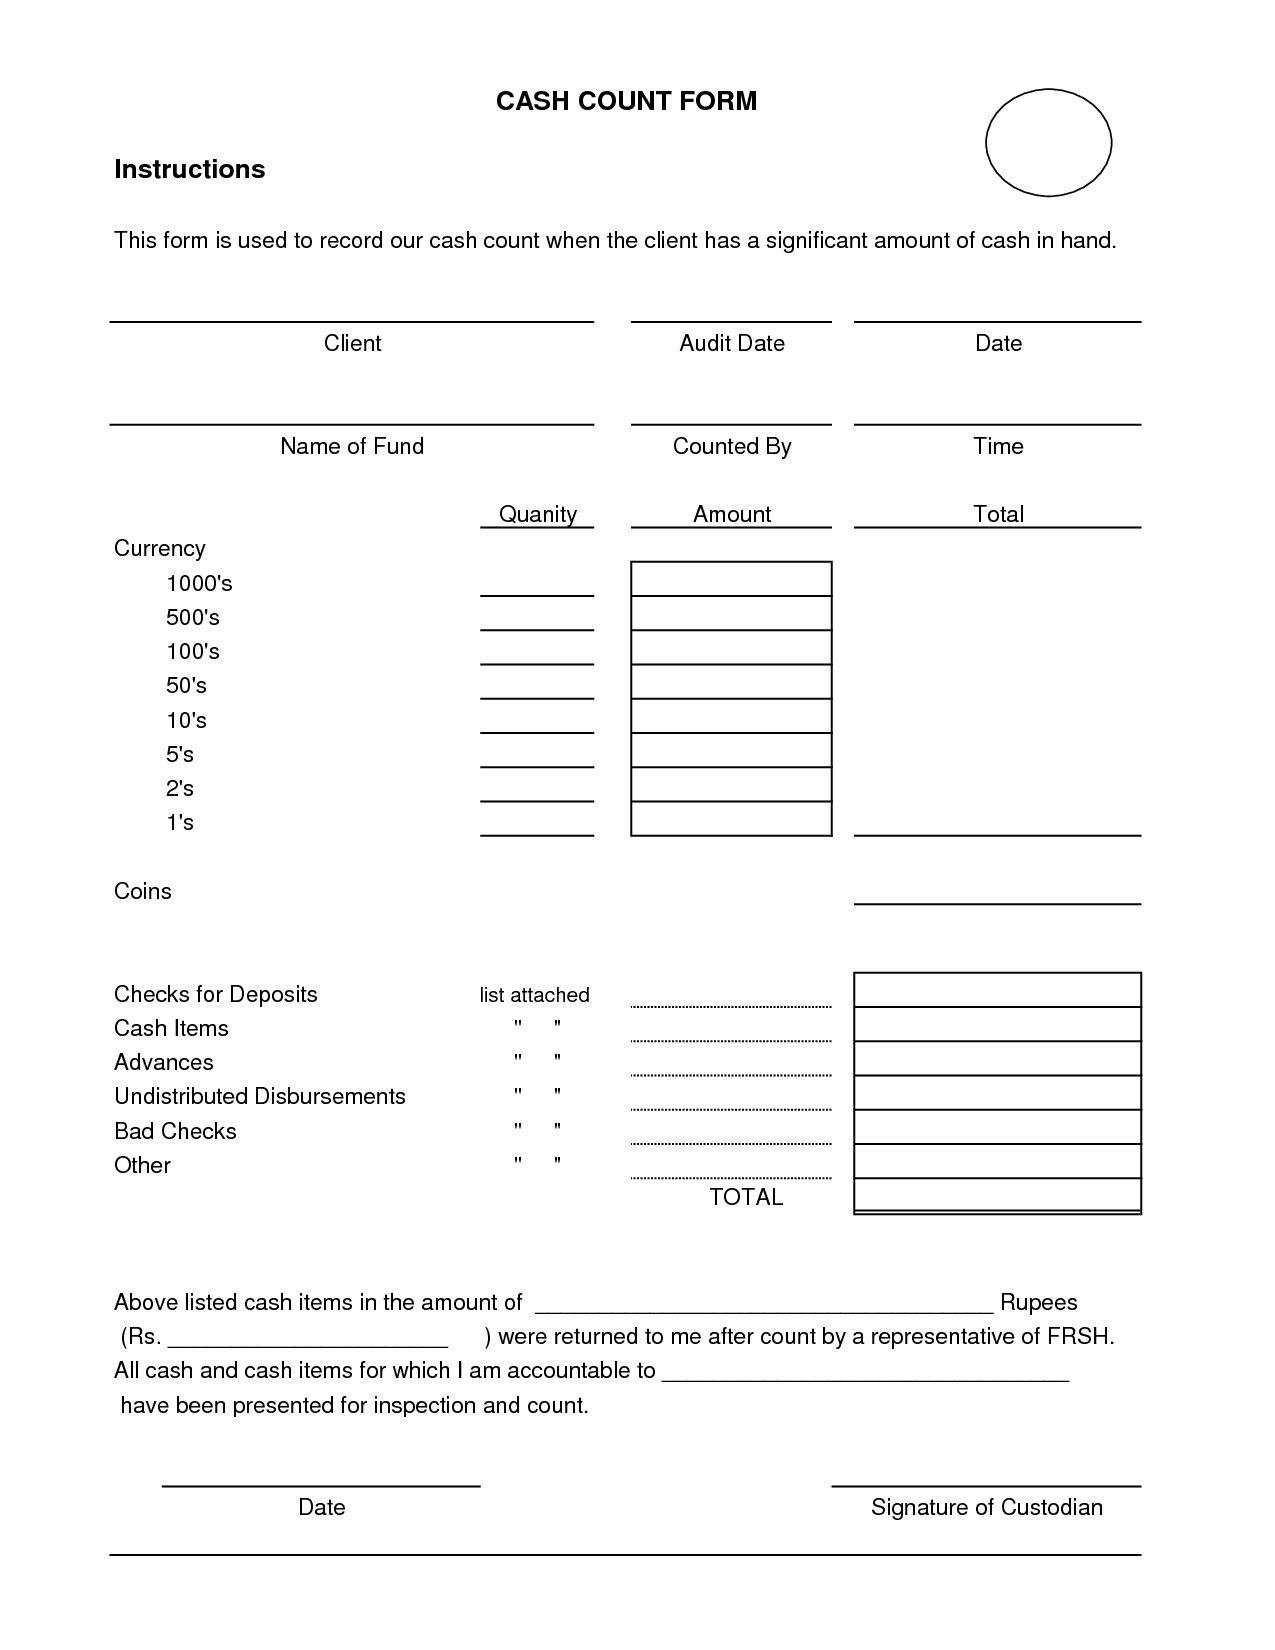 Daily cash sheet template cash count sheet audit working template mar here we are going to help you manage petty cash system with this log template because always nvjuhfo Choice Image